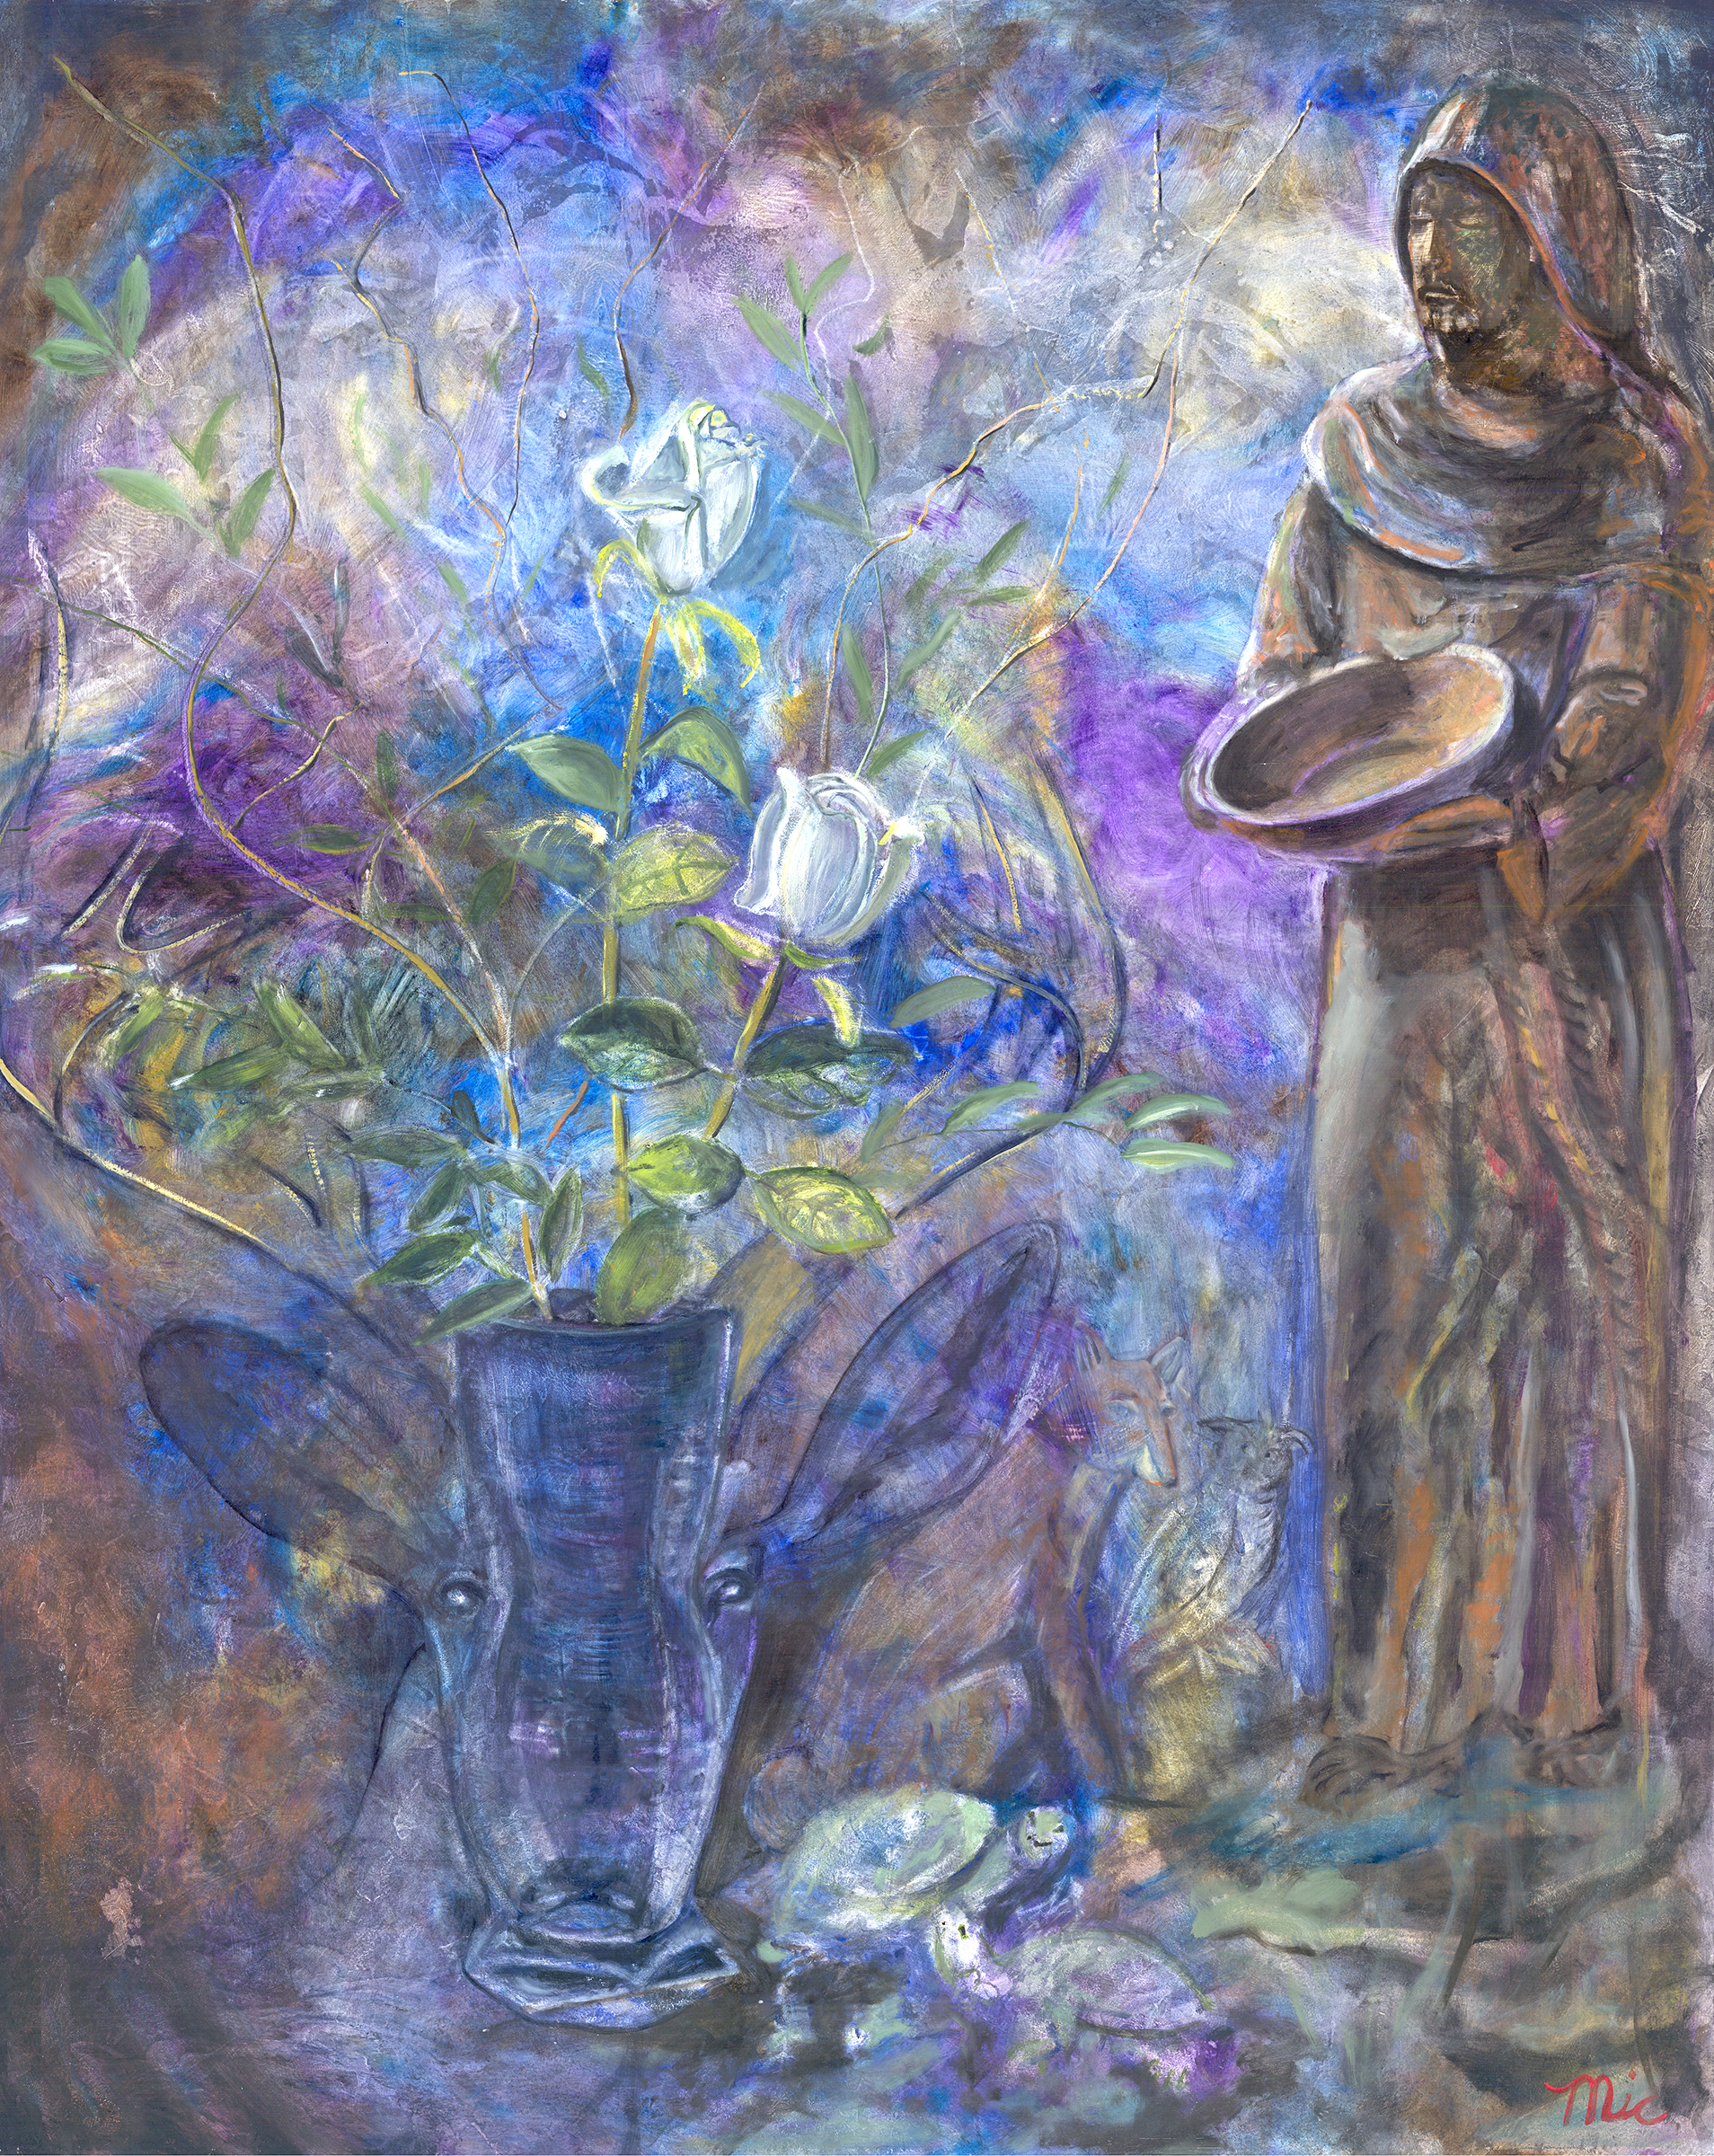 """Saint Francis and Arrangement of Animals - Oil om Panel 30"""" x 238"""" $5,200Giclee Limited Edition and canvas prints are available. Please visit the prints gallery."""